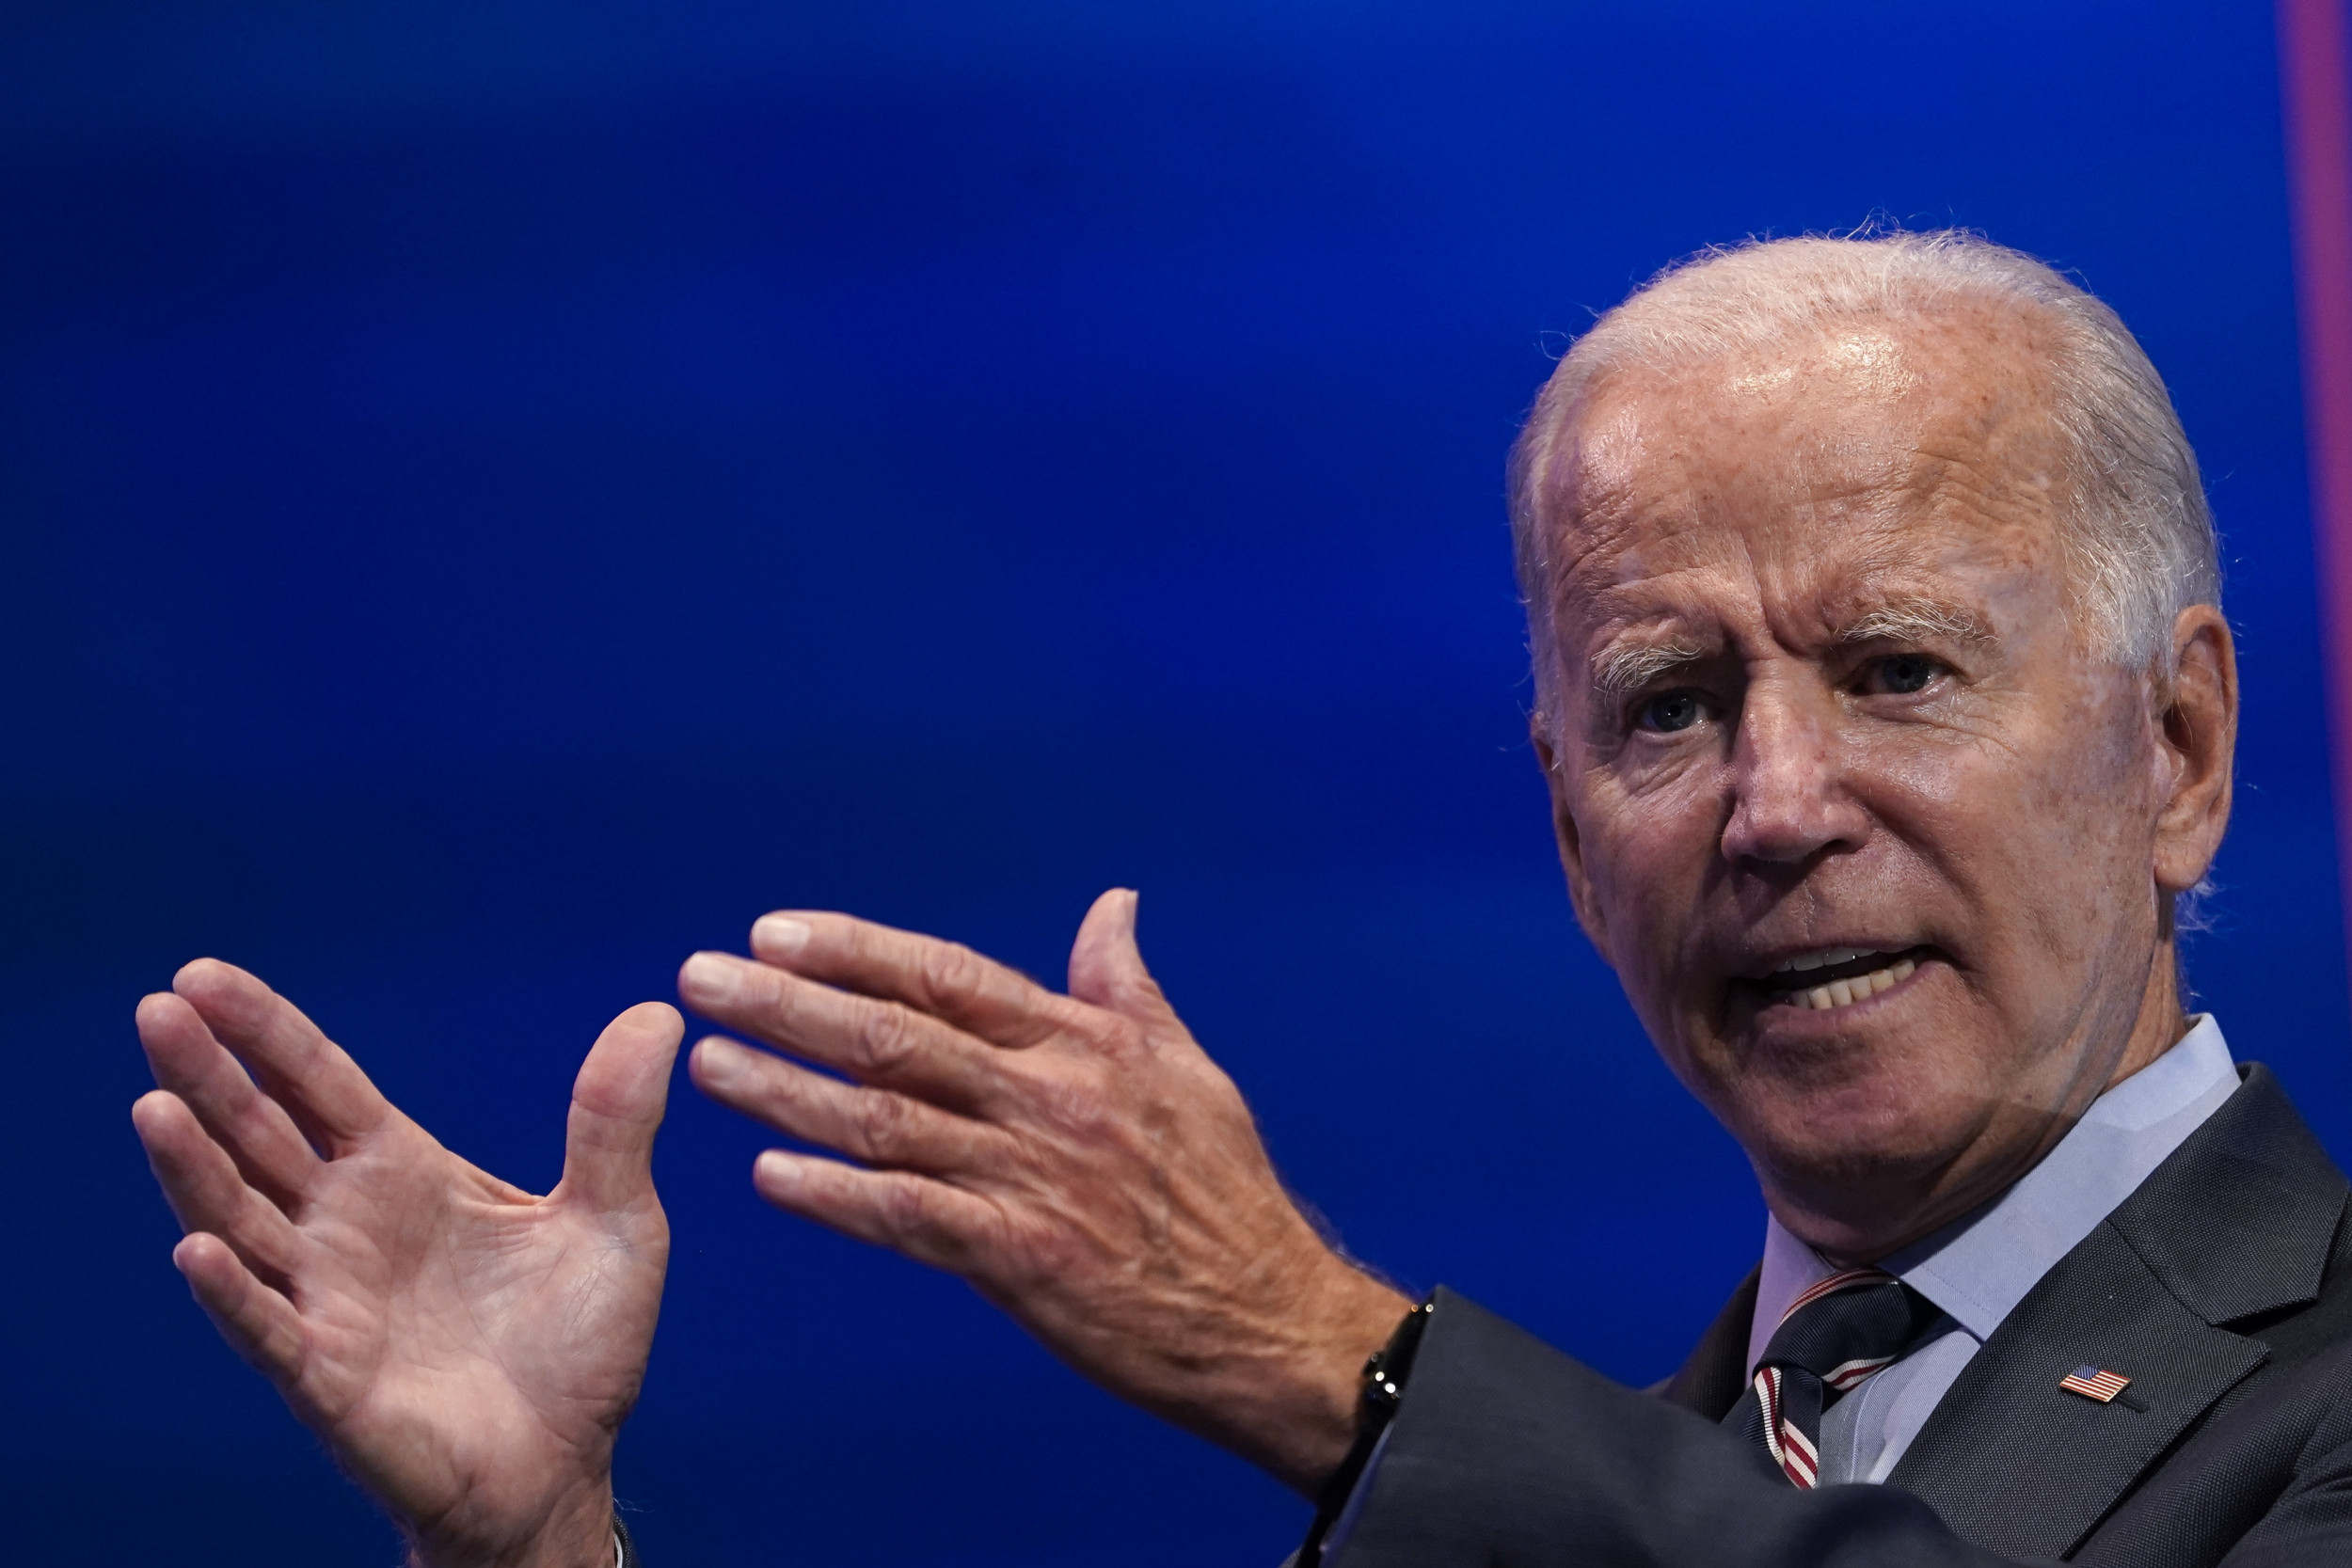 Biden nearly 5 times more likely than Trump to win election, forecast models average shows